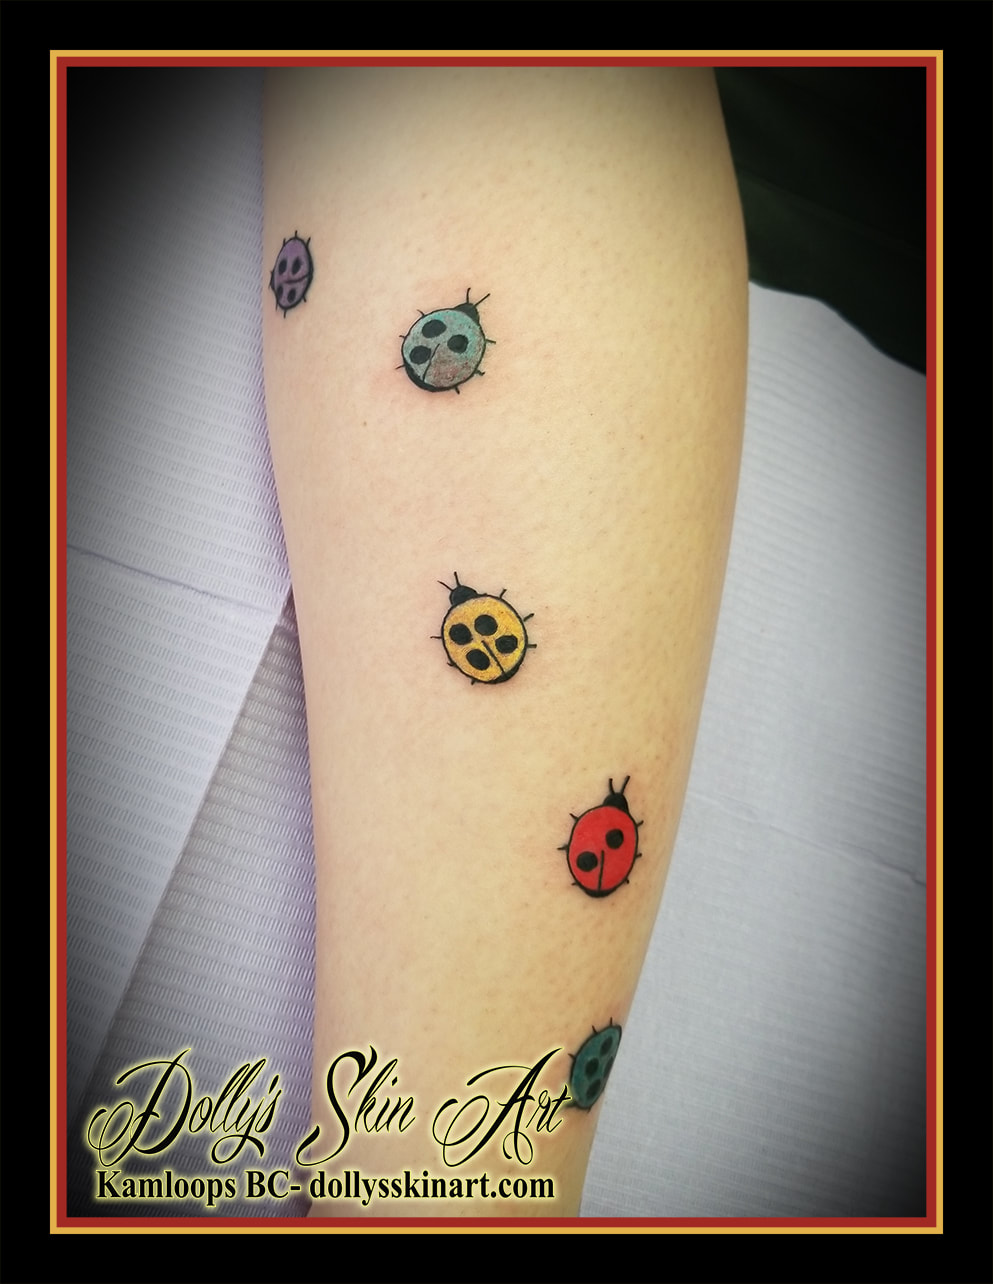 small simple cute ladybug leg tattoo purple green yellow red blue colour kamloops dollys skin art